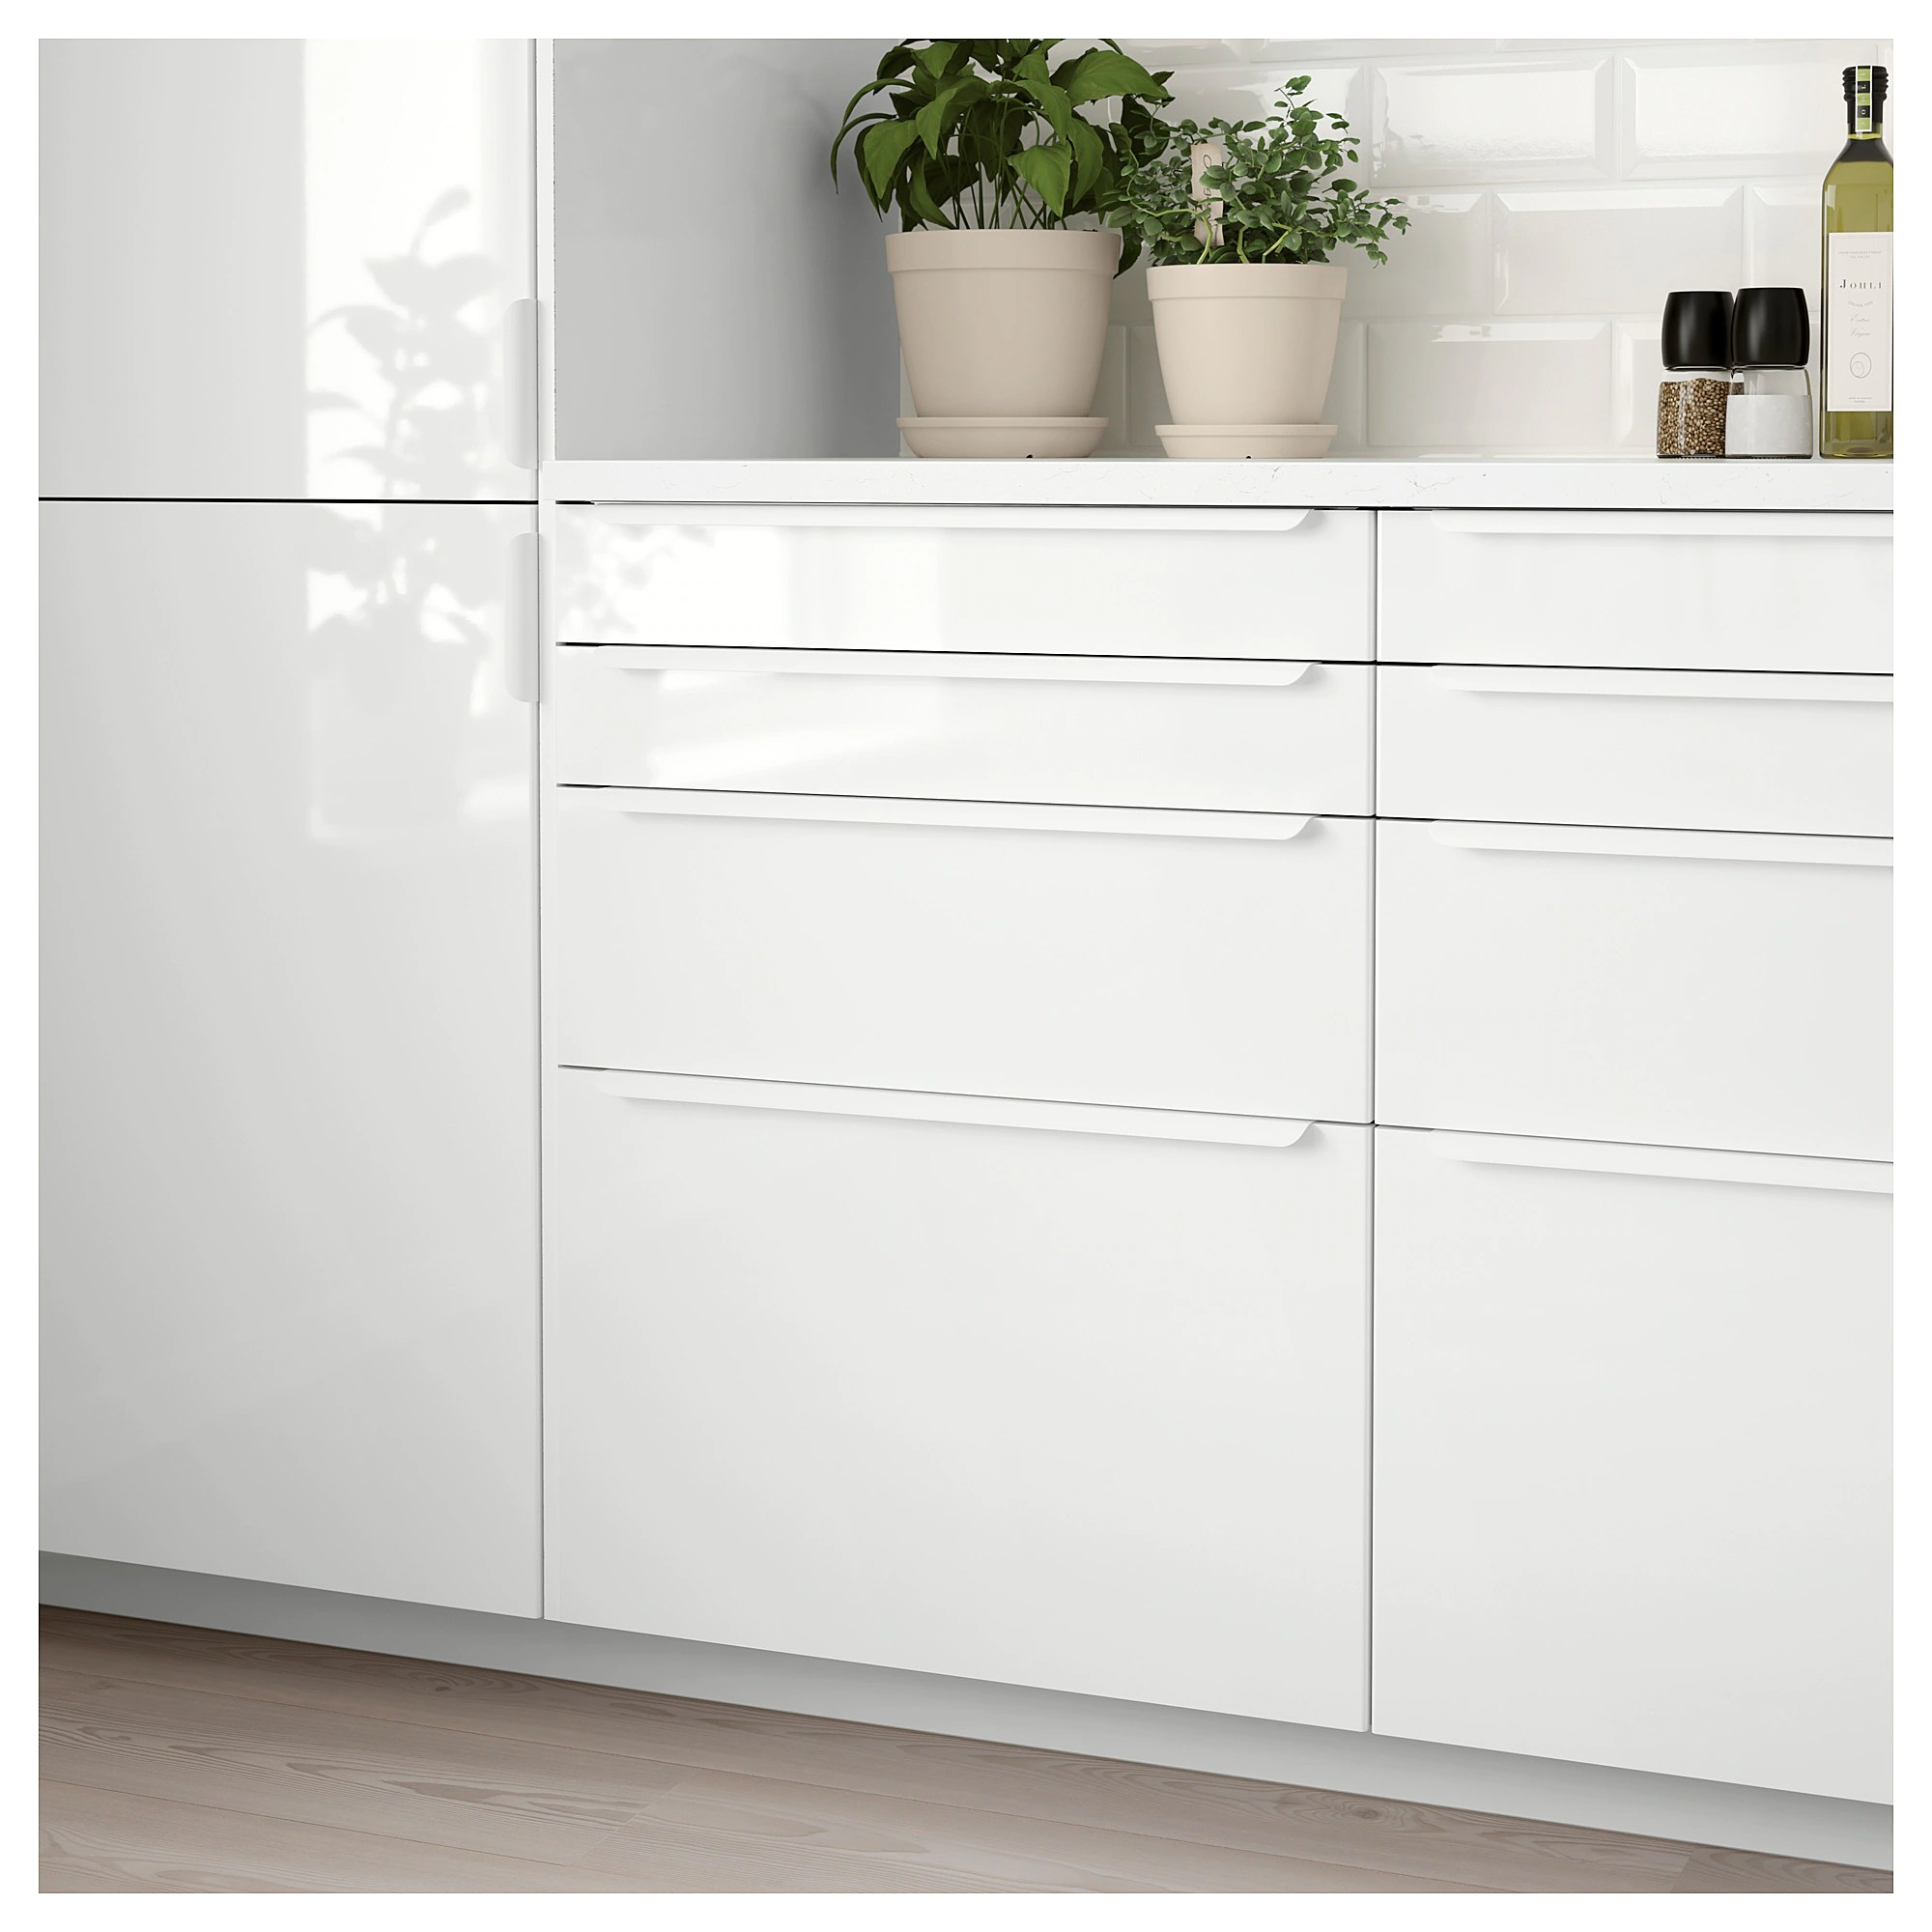 Cucina Ikea Ringhult Ringhult Frontale Cassetto Lucido Bianco